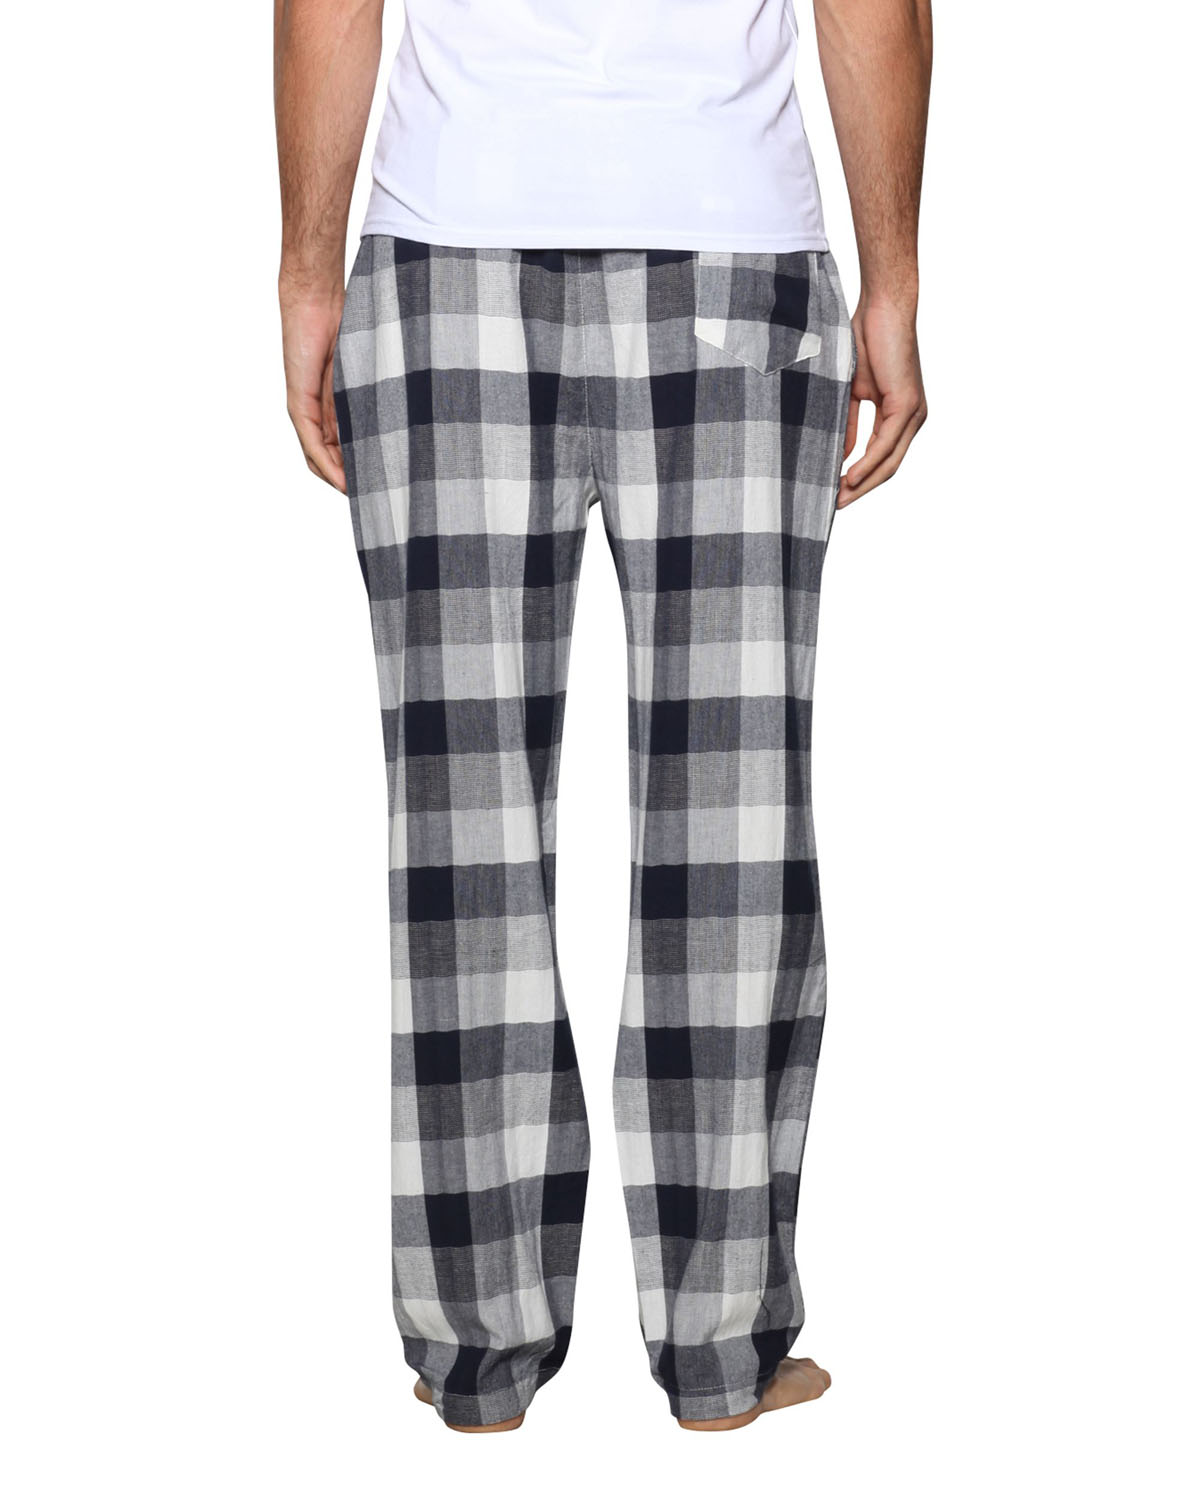 HEREN PYJAMA BROEK | 77661609 WE Fashion